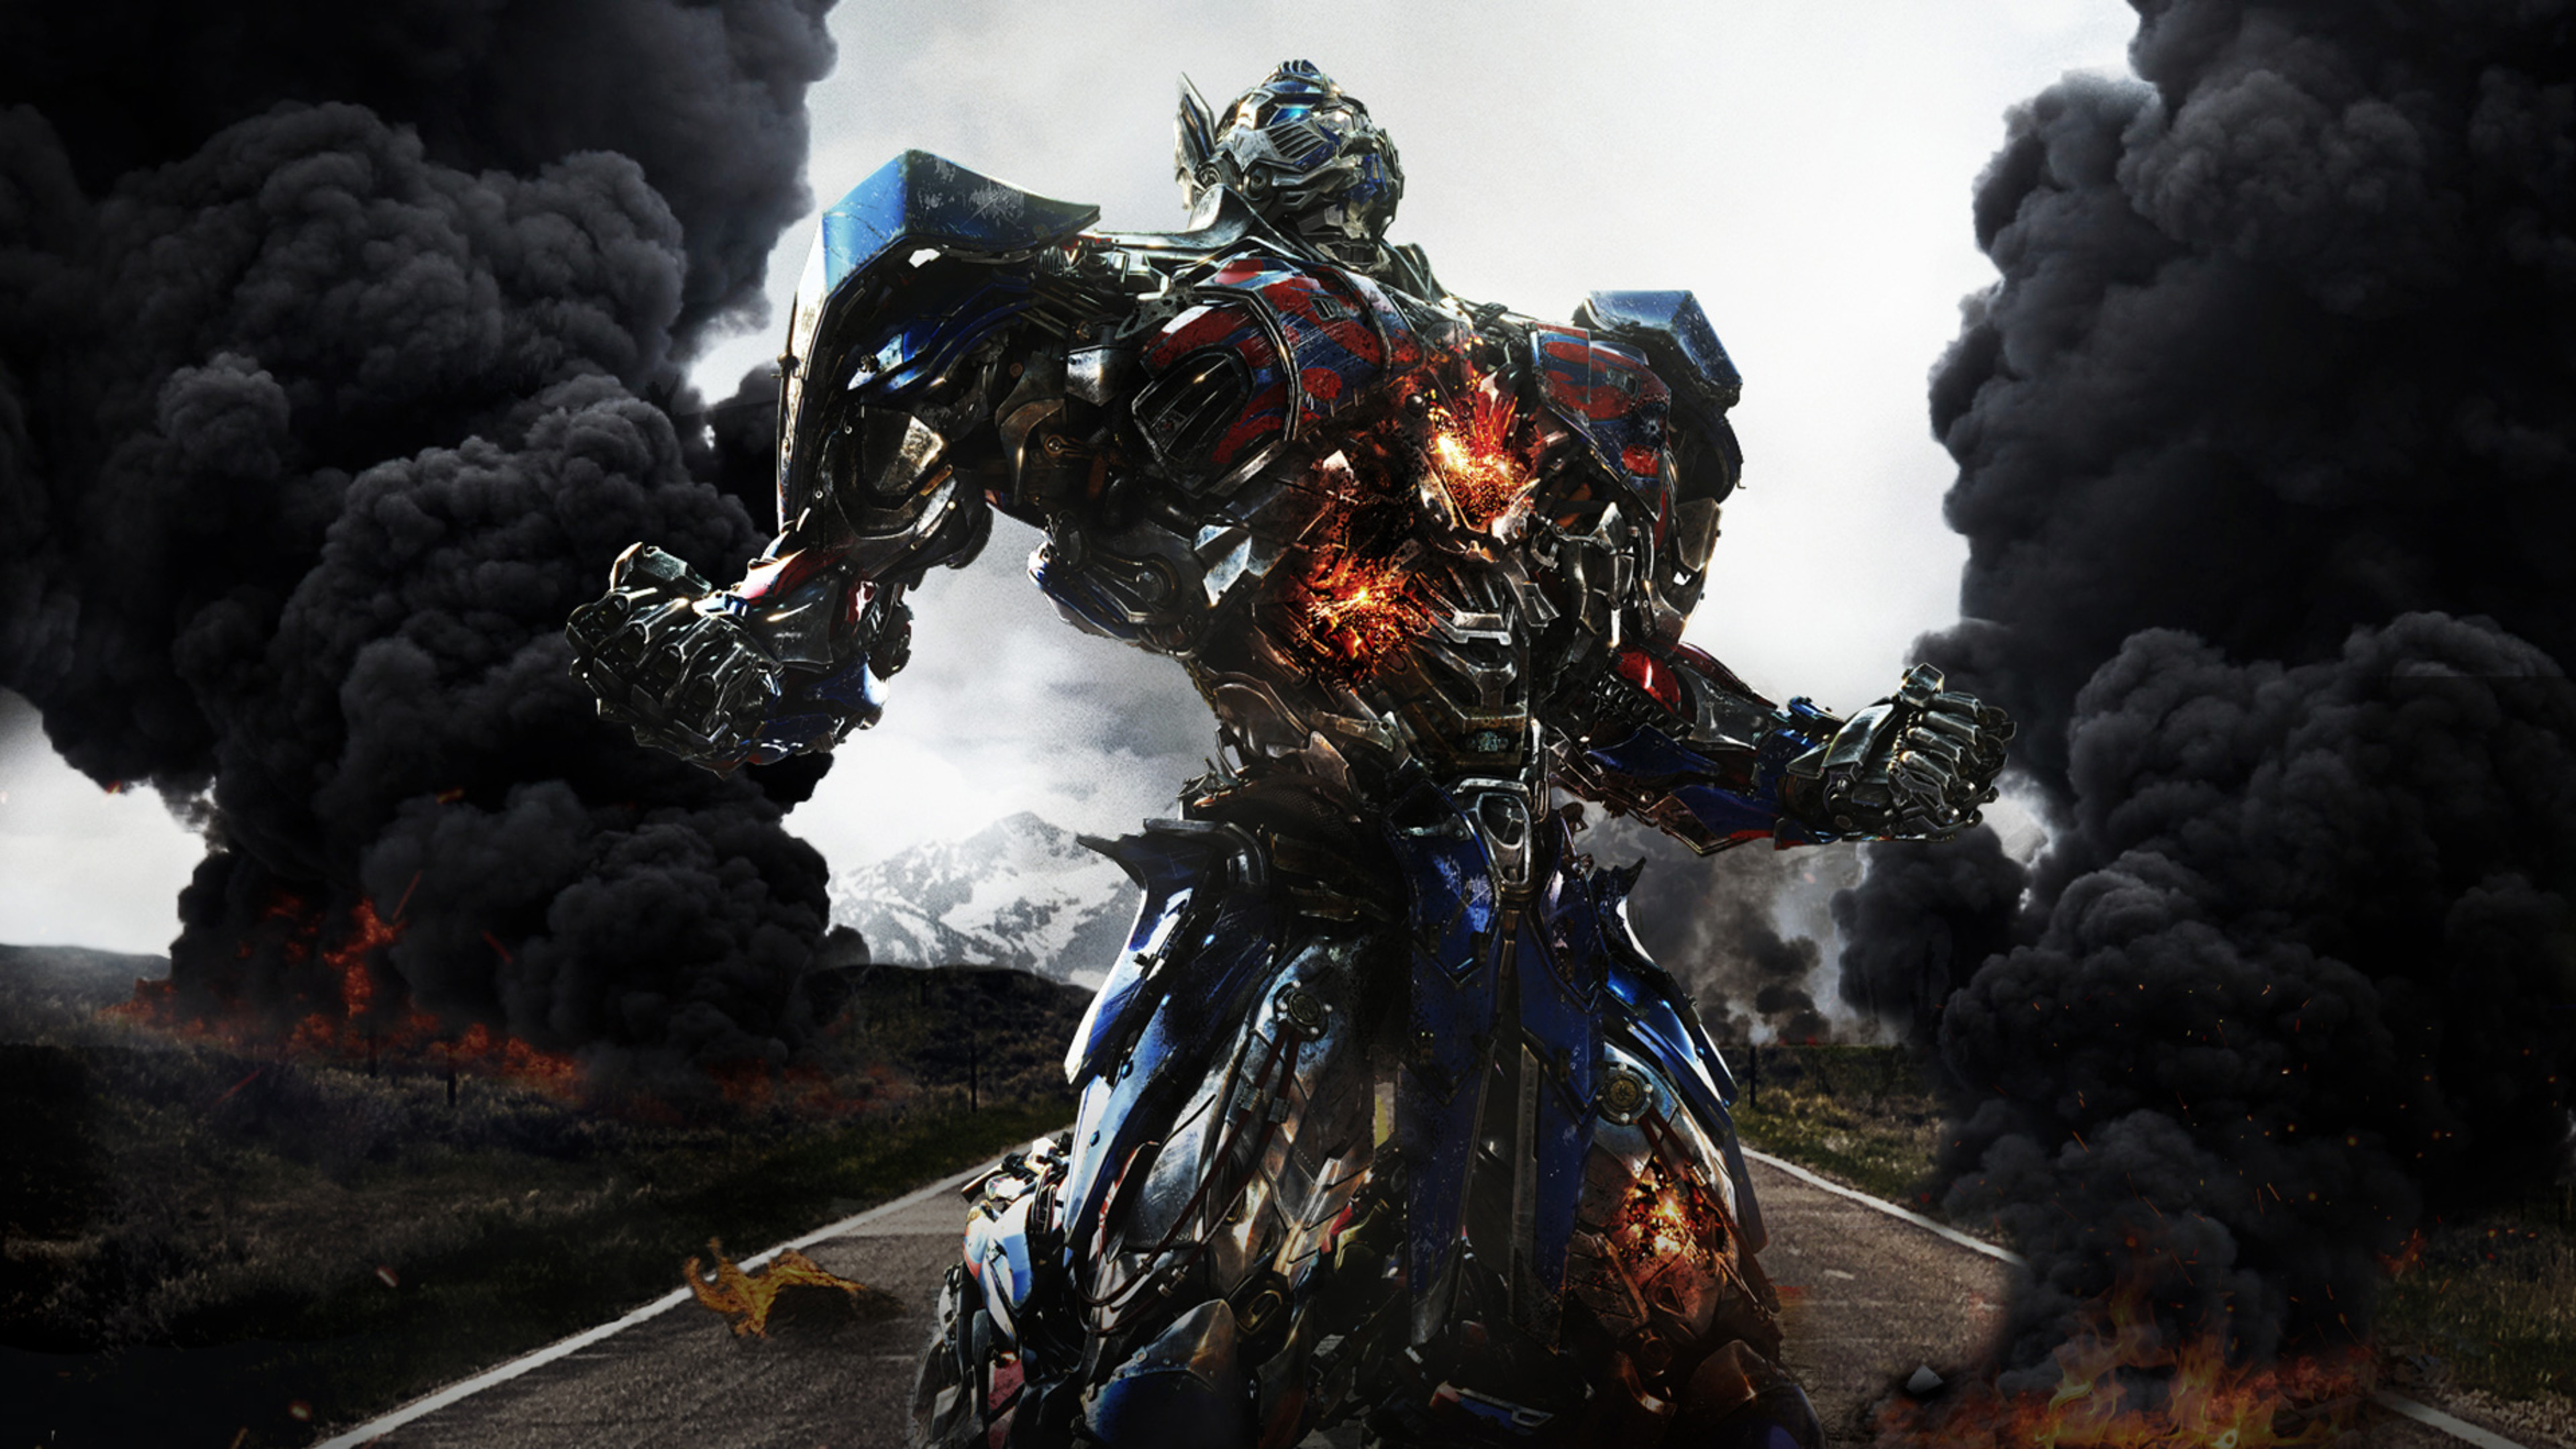 3840x2160 Transformers 5 Poster Fan Art 4k HD 4k